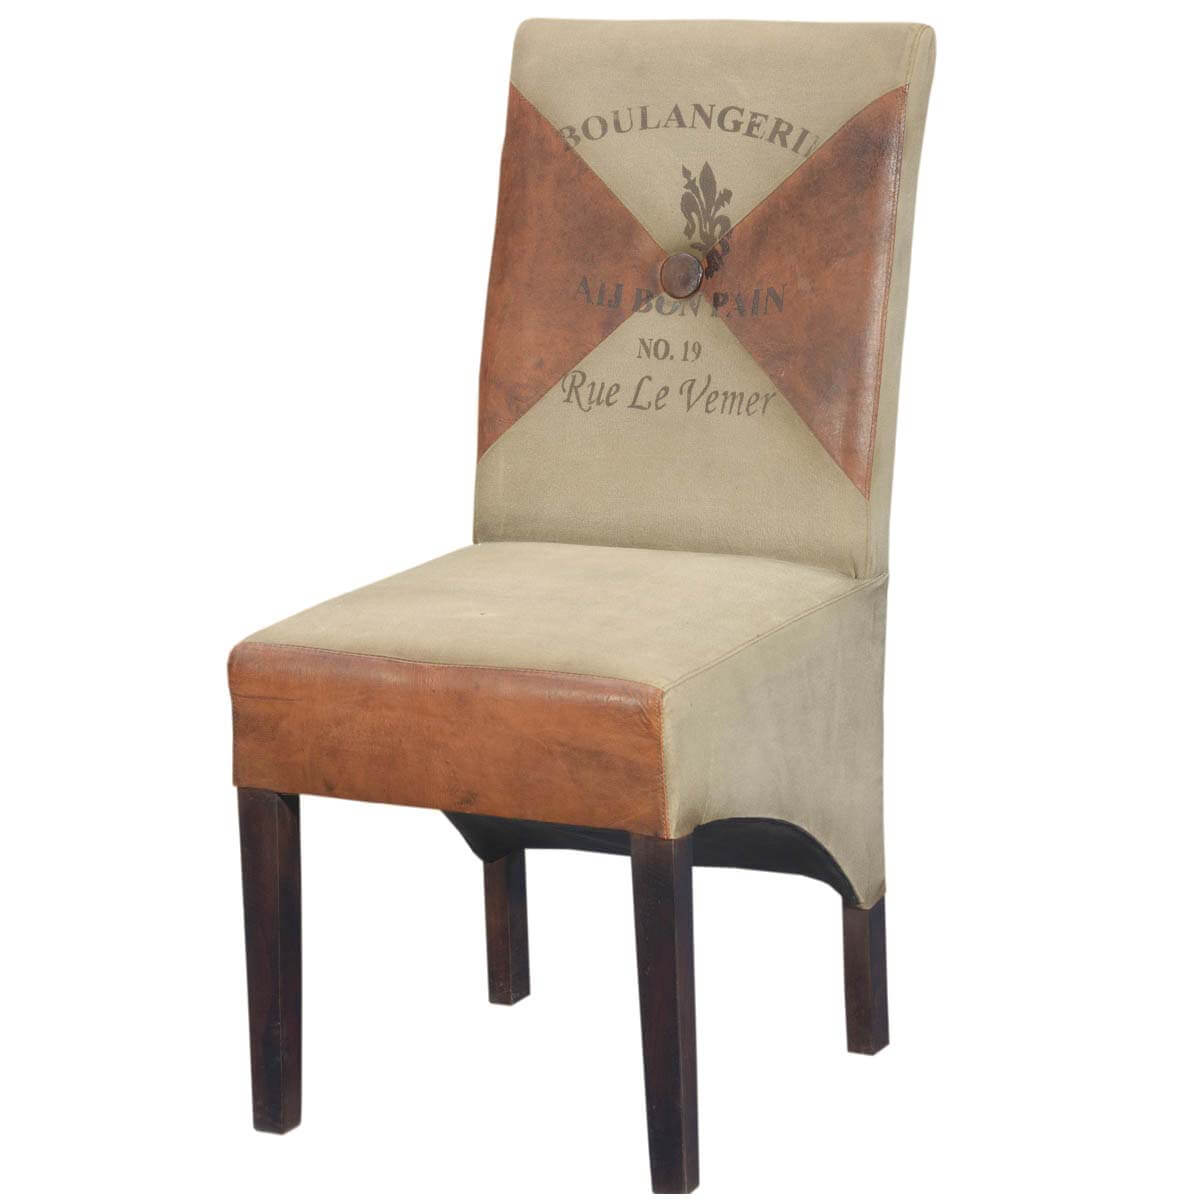 Stylish Contemporary Leather and Fabric Upholstered Parson Chair